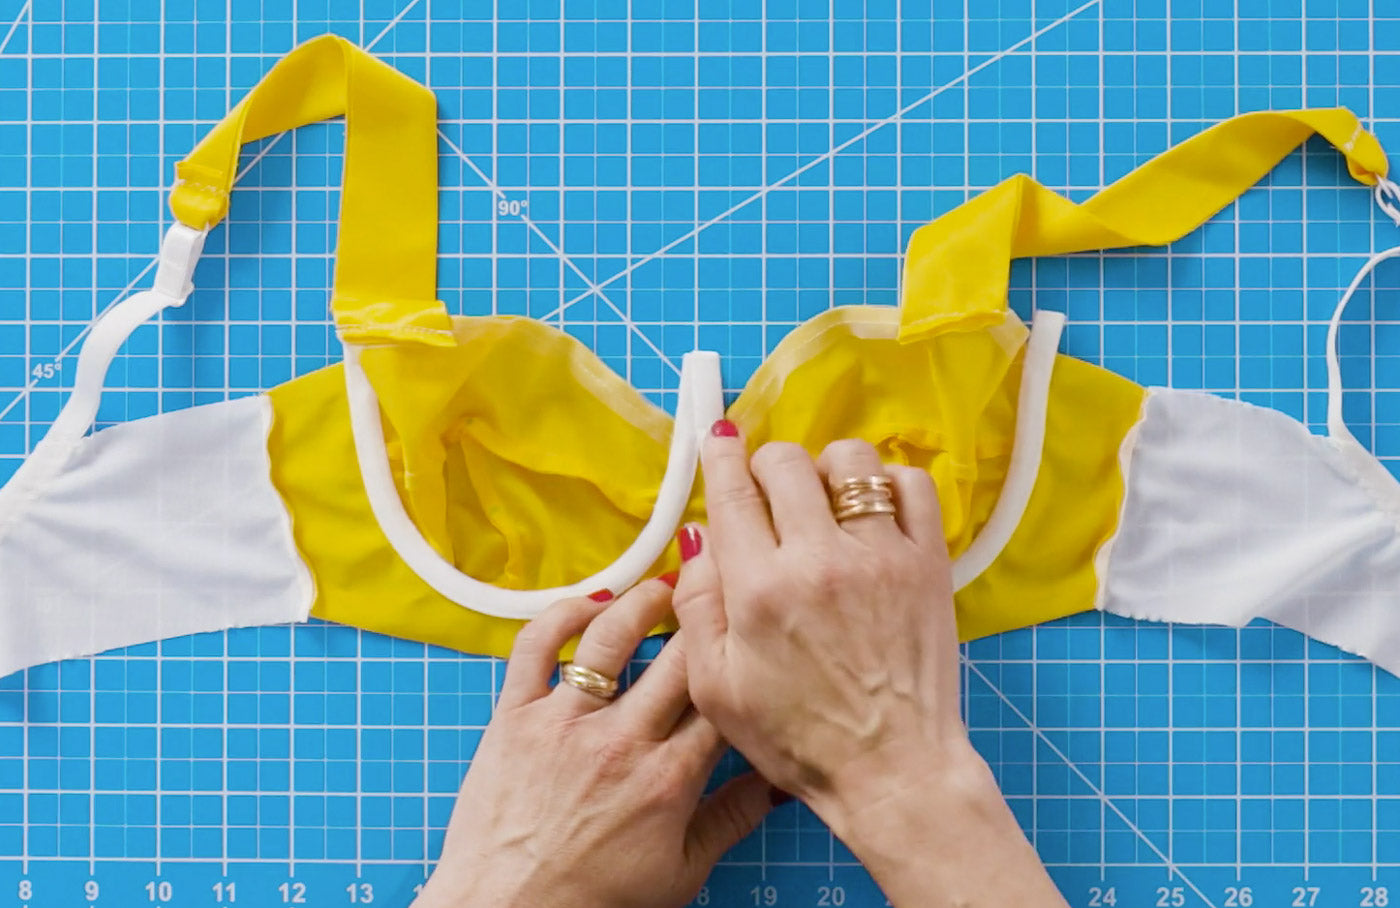 Hands placing the underwire casing onto an unfinished, handmade bra. The bra is color-blocked vibrant yellow and white and is laying on a bright aqua cutting mat.